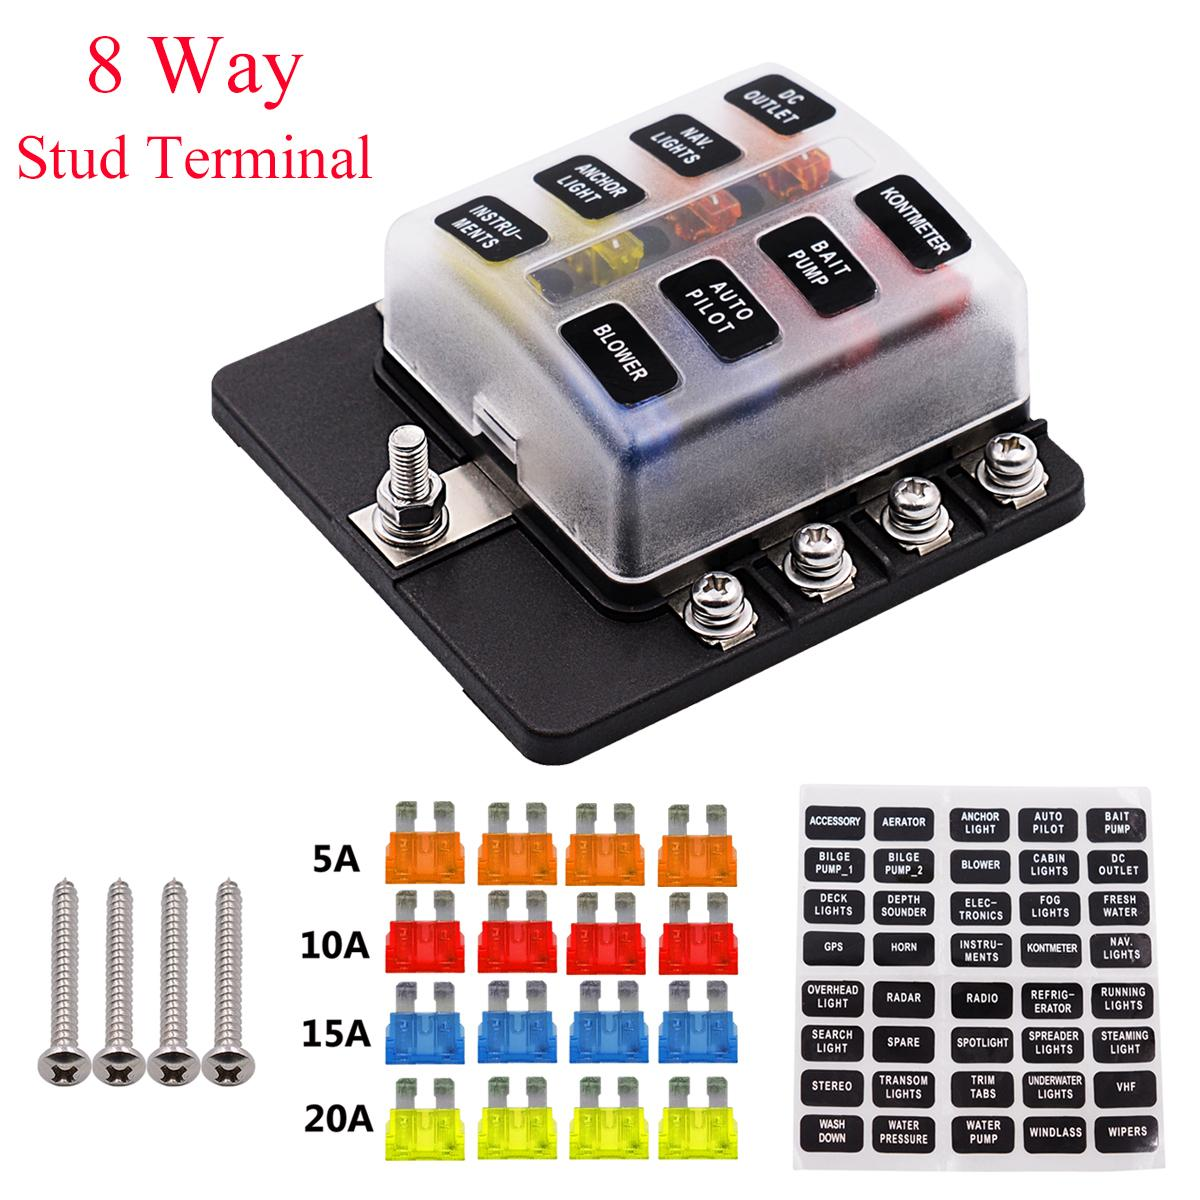 Universal 8 Way Fuse Box 12V 32V Circuit Standard Blade Block Holder Car  Caravan-in Fuses from Automobiles & Motorcycles on Aliexpress.com | Alibaba  Group